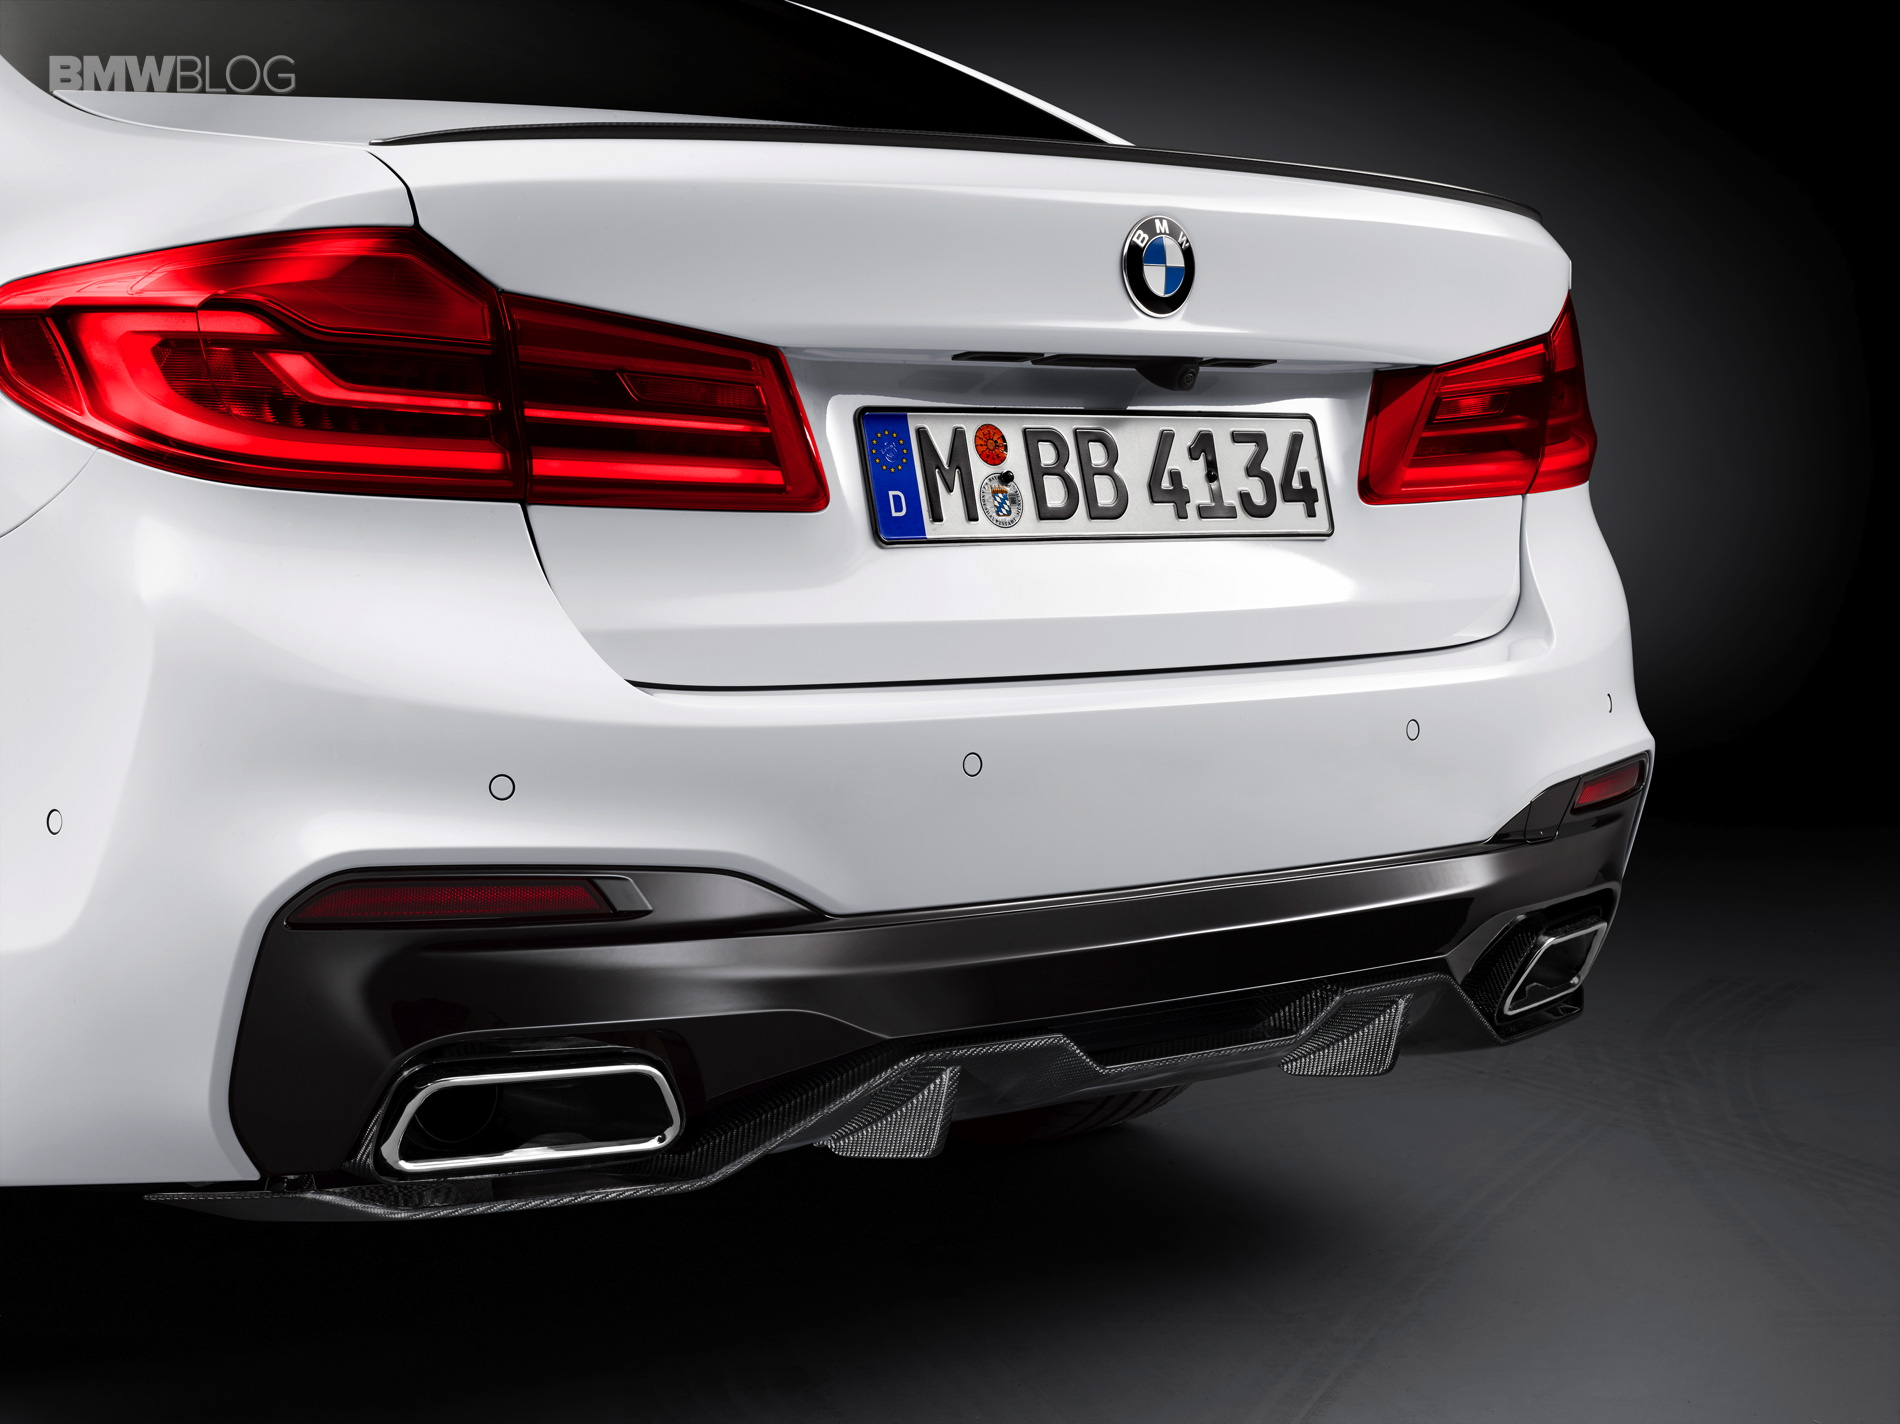 Bmw M Performance Parts For The New Bmw G30 5 Series